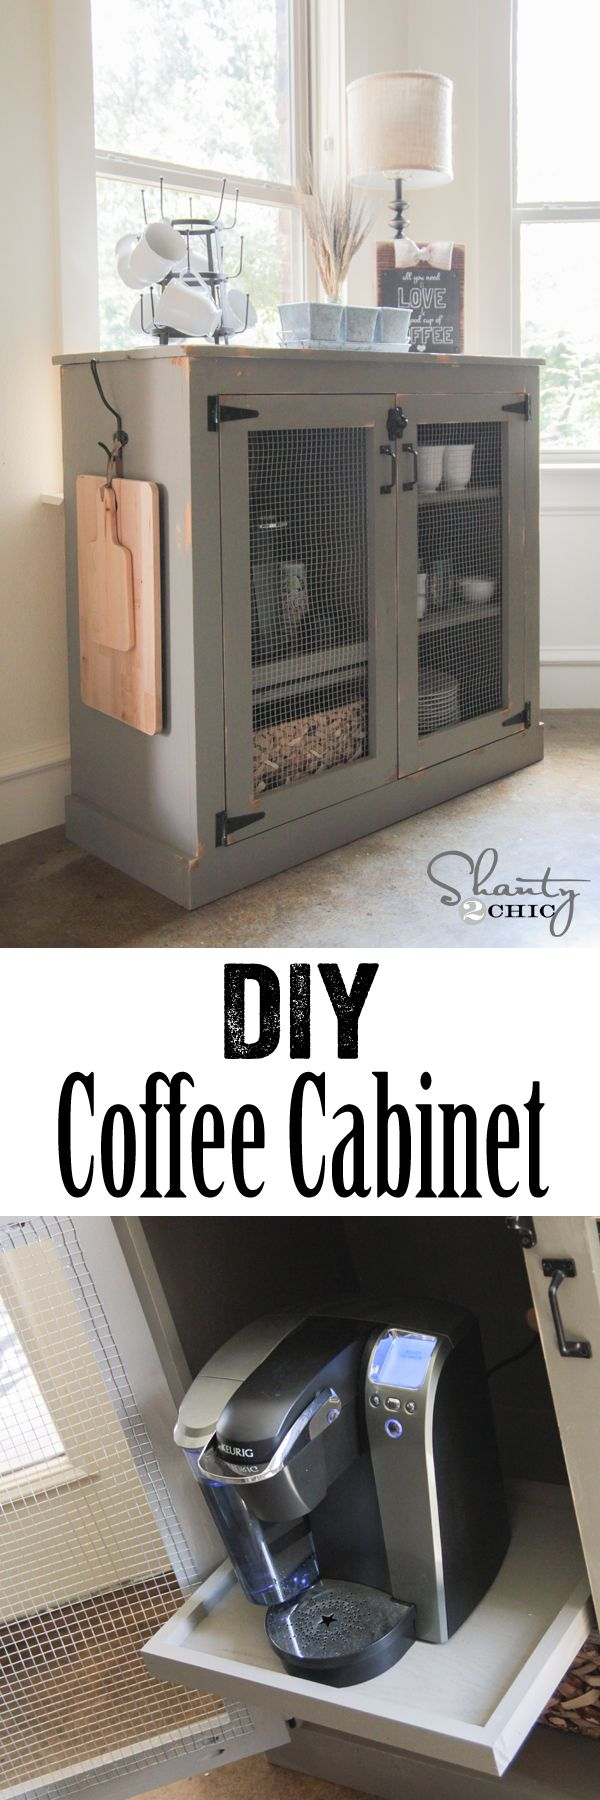 Under cabinet plate rack plans free - Diy Farmhouse Coffee Cabinet